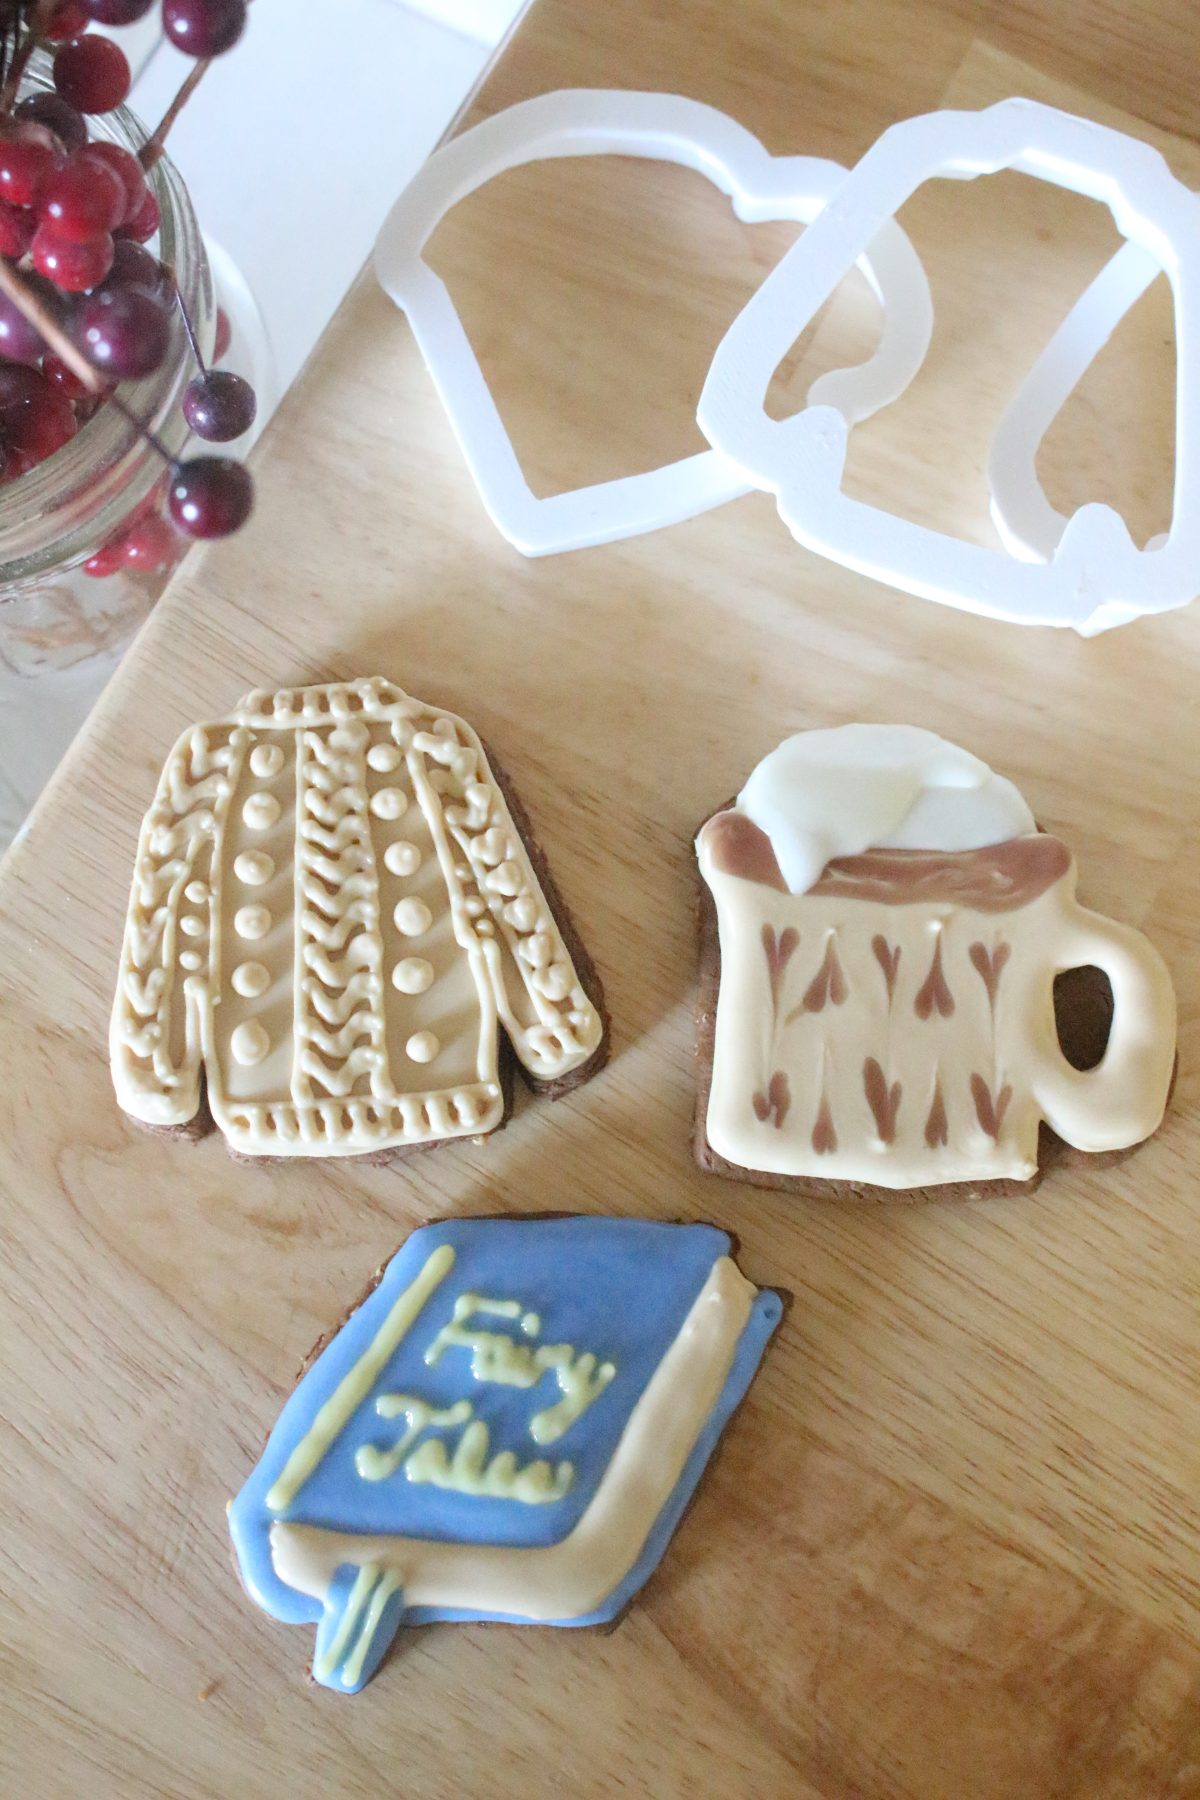 Finished sweater, mug, and book cookies iced with maple powdered sugar royal icing